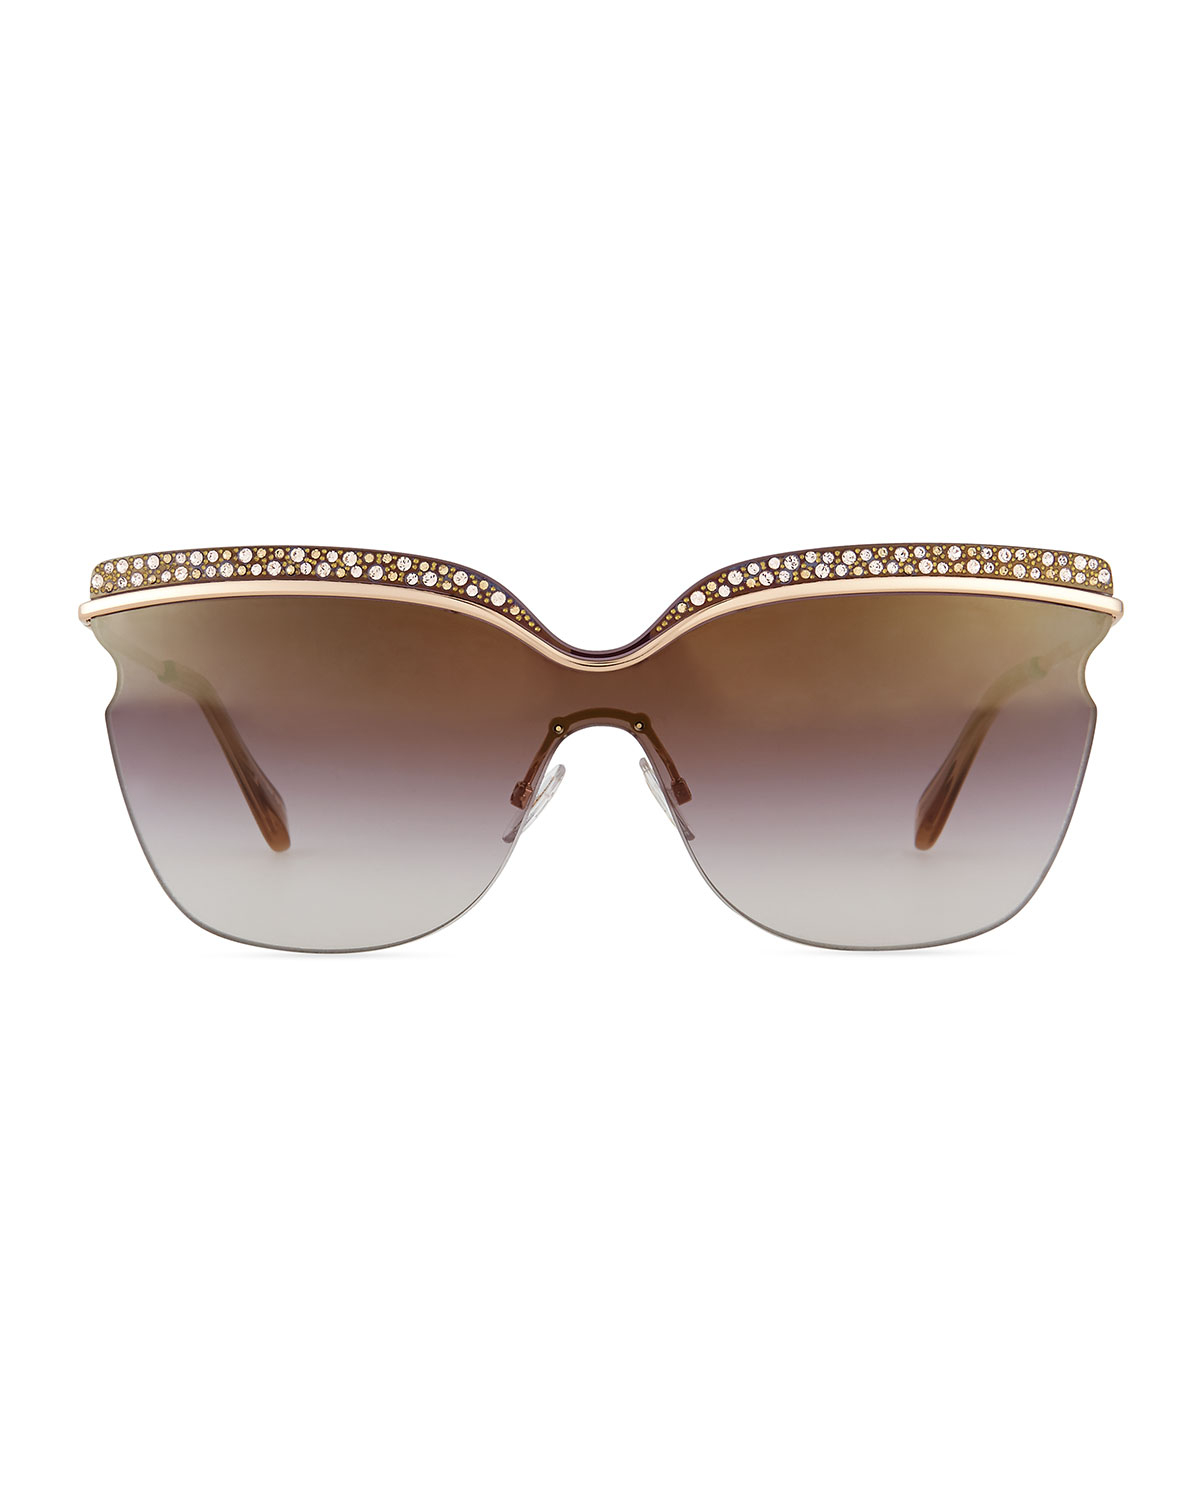 19f5af419d1e Lyst - Jimmy Choo Jezebel Exaggerated-Brow Sunglasses in Pink